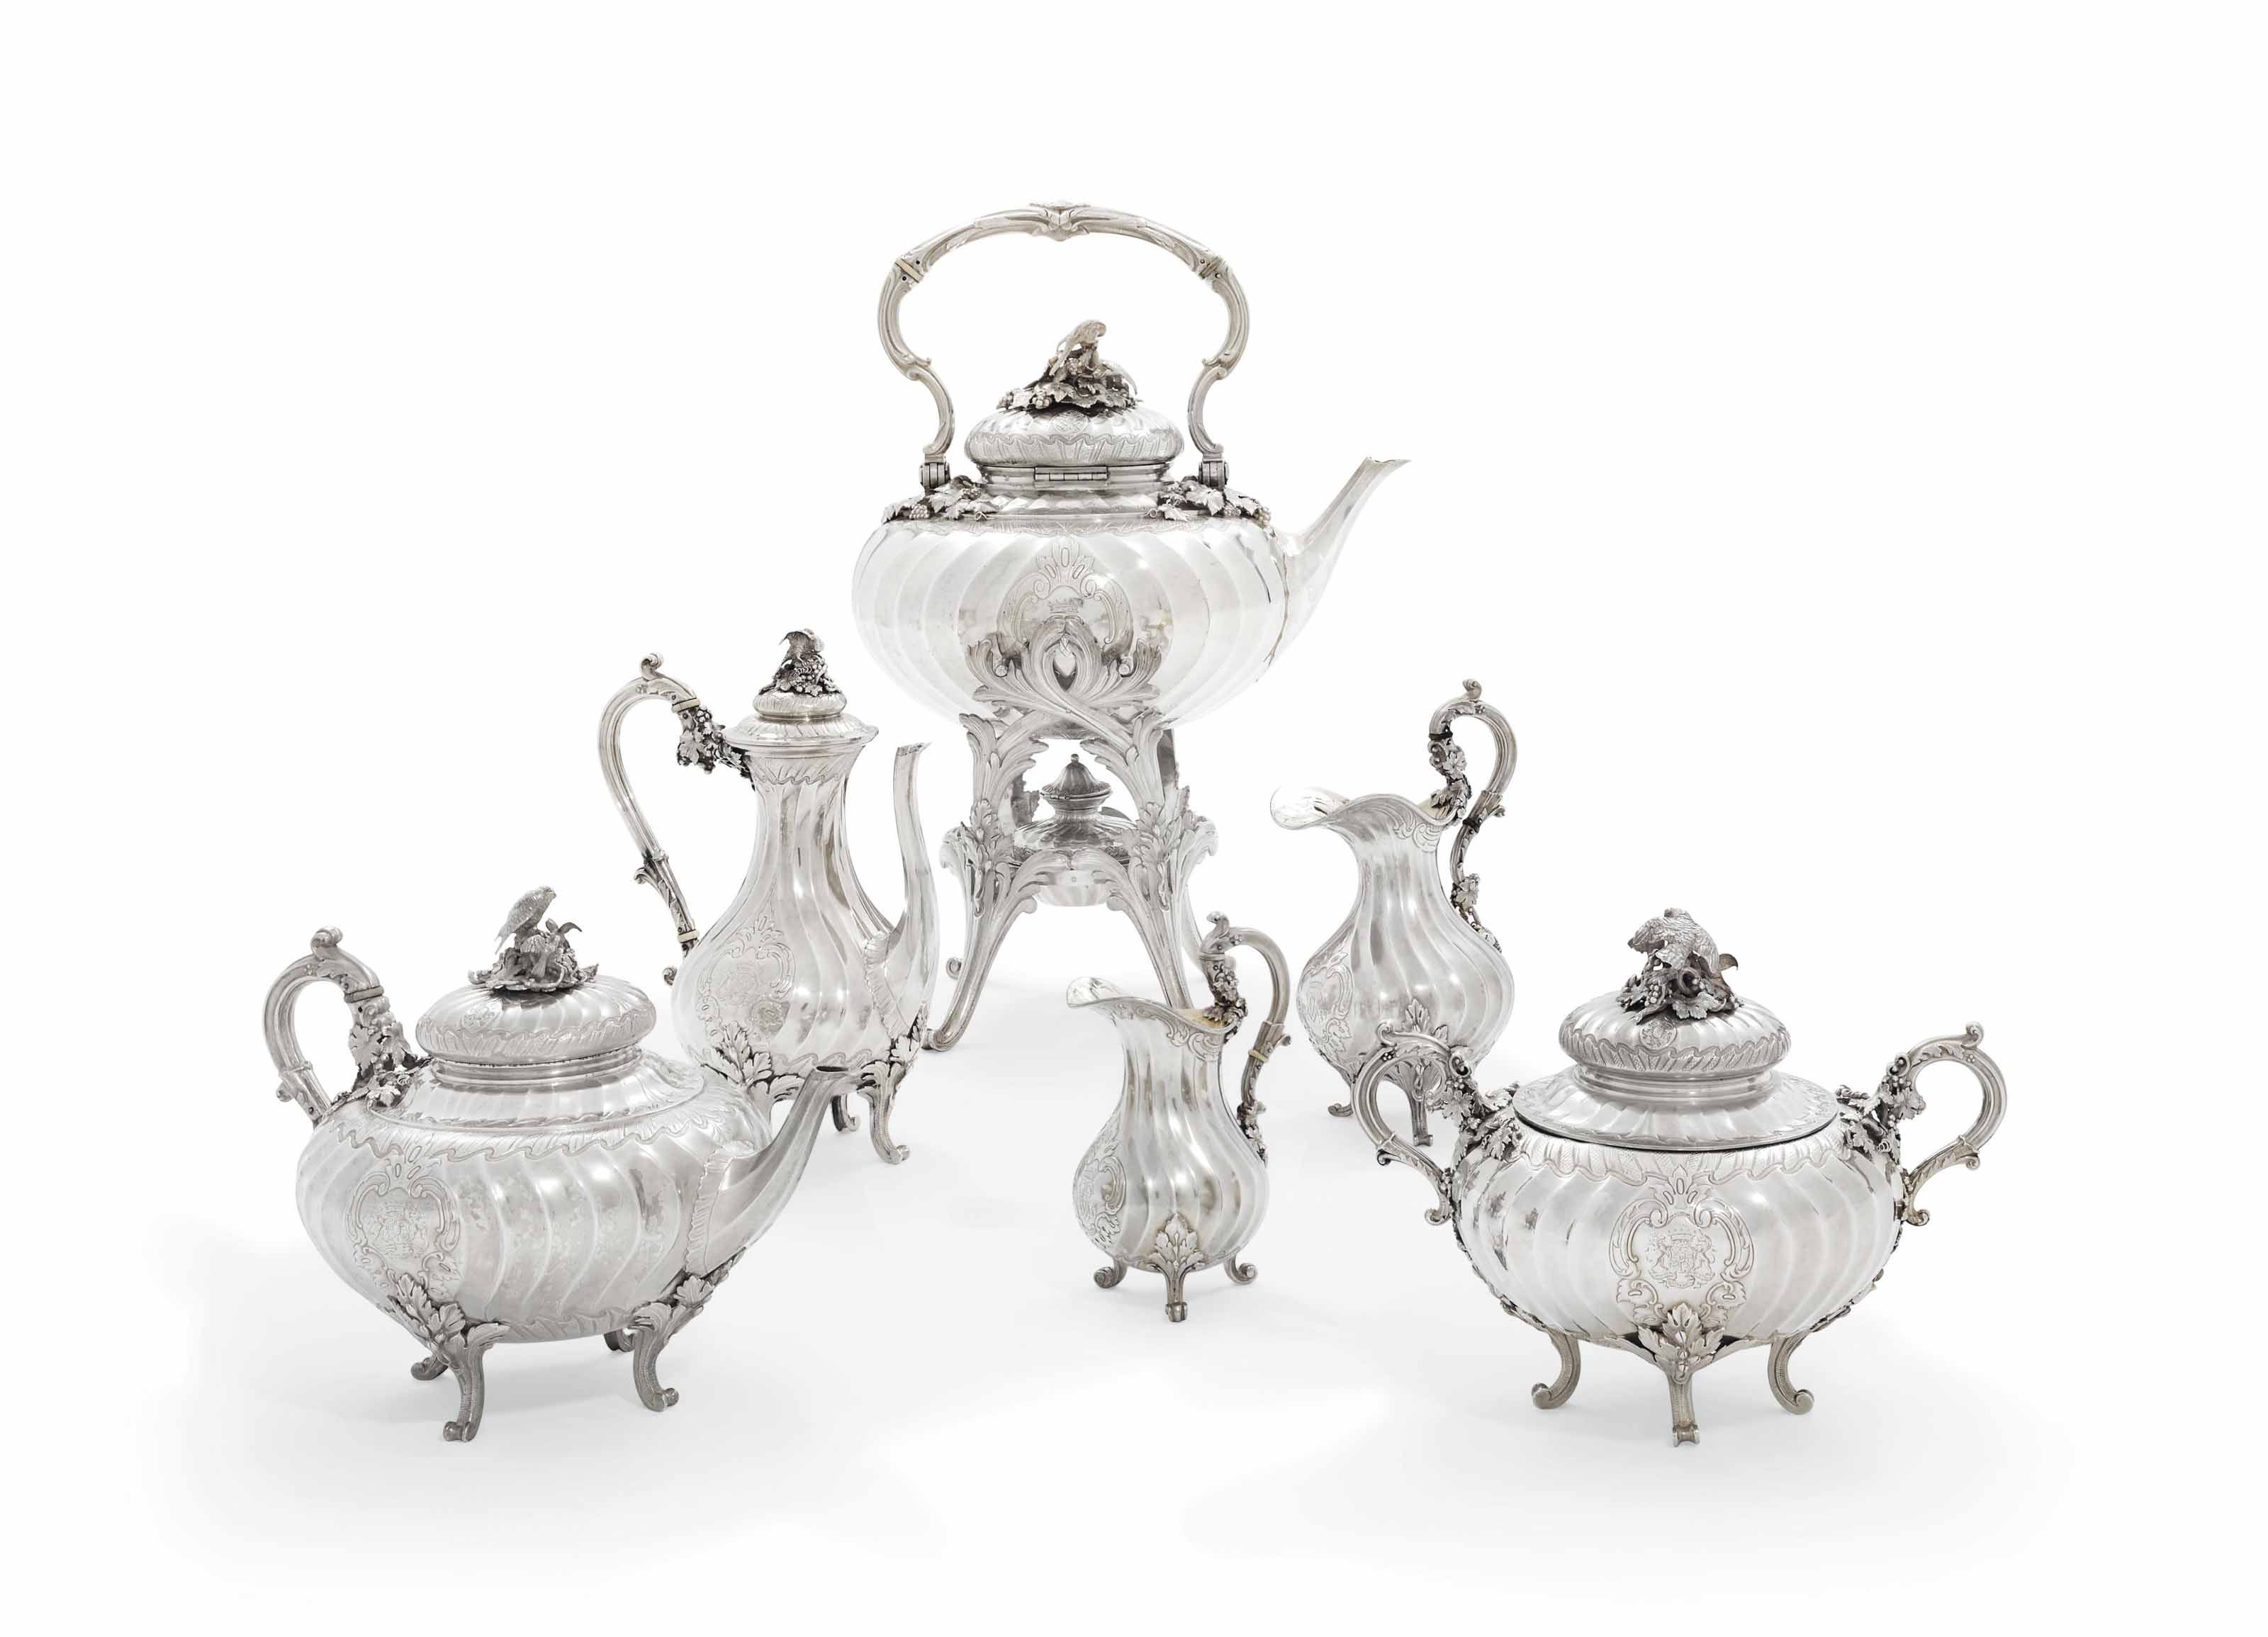 A FRENCH SILVER SIX-PIECE TEA AND COFFEE-SERVICE